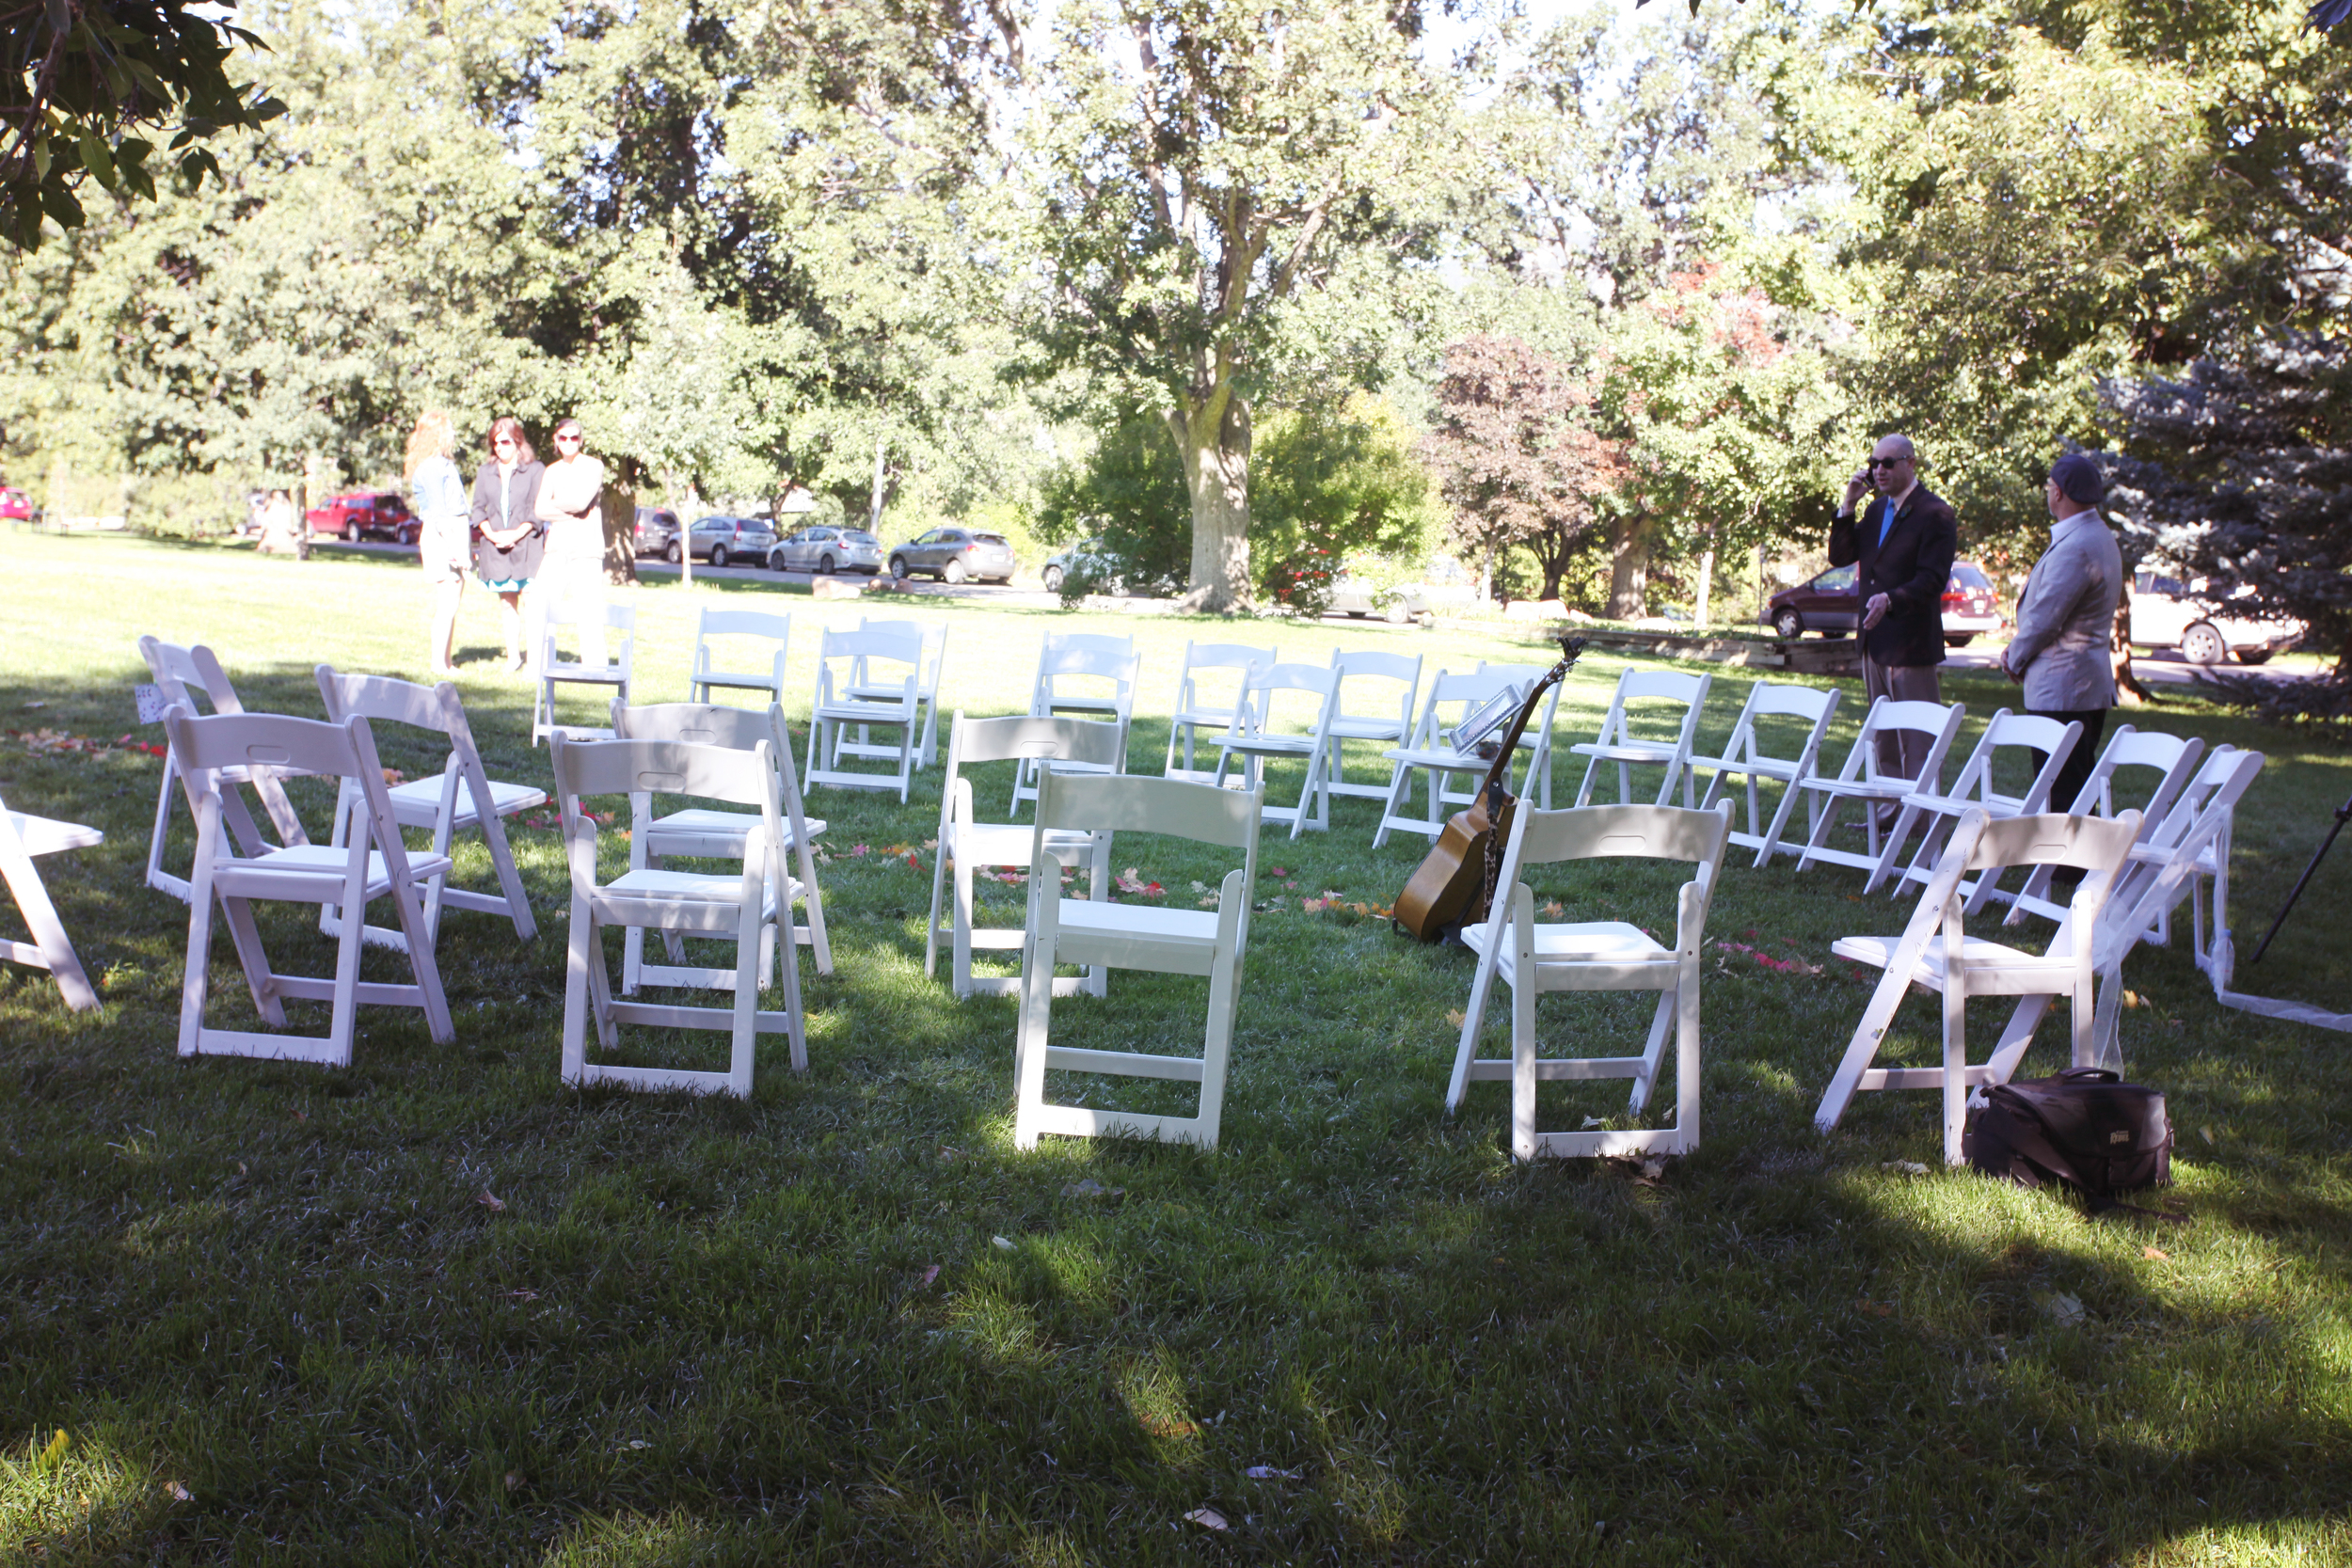 Intimate seating circle under a beautiful tree in the park.